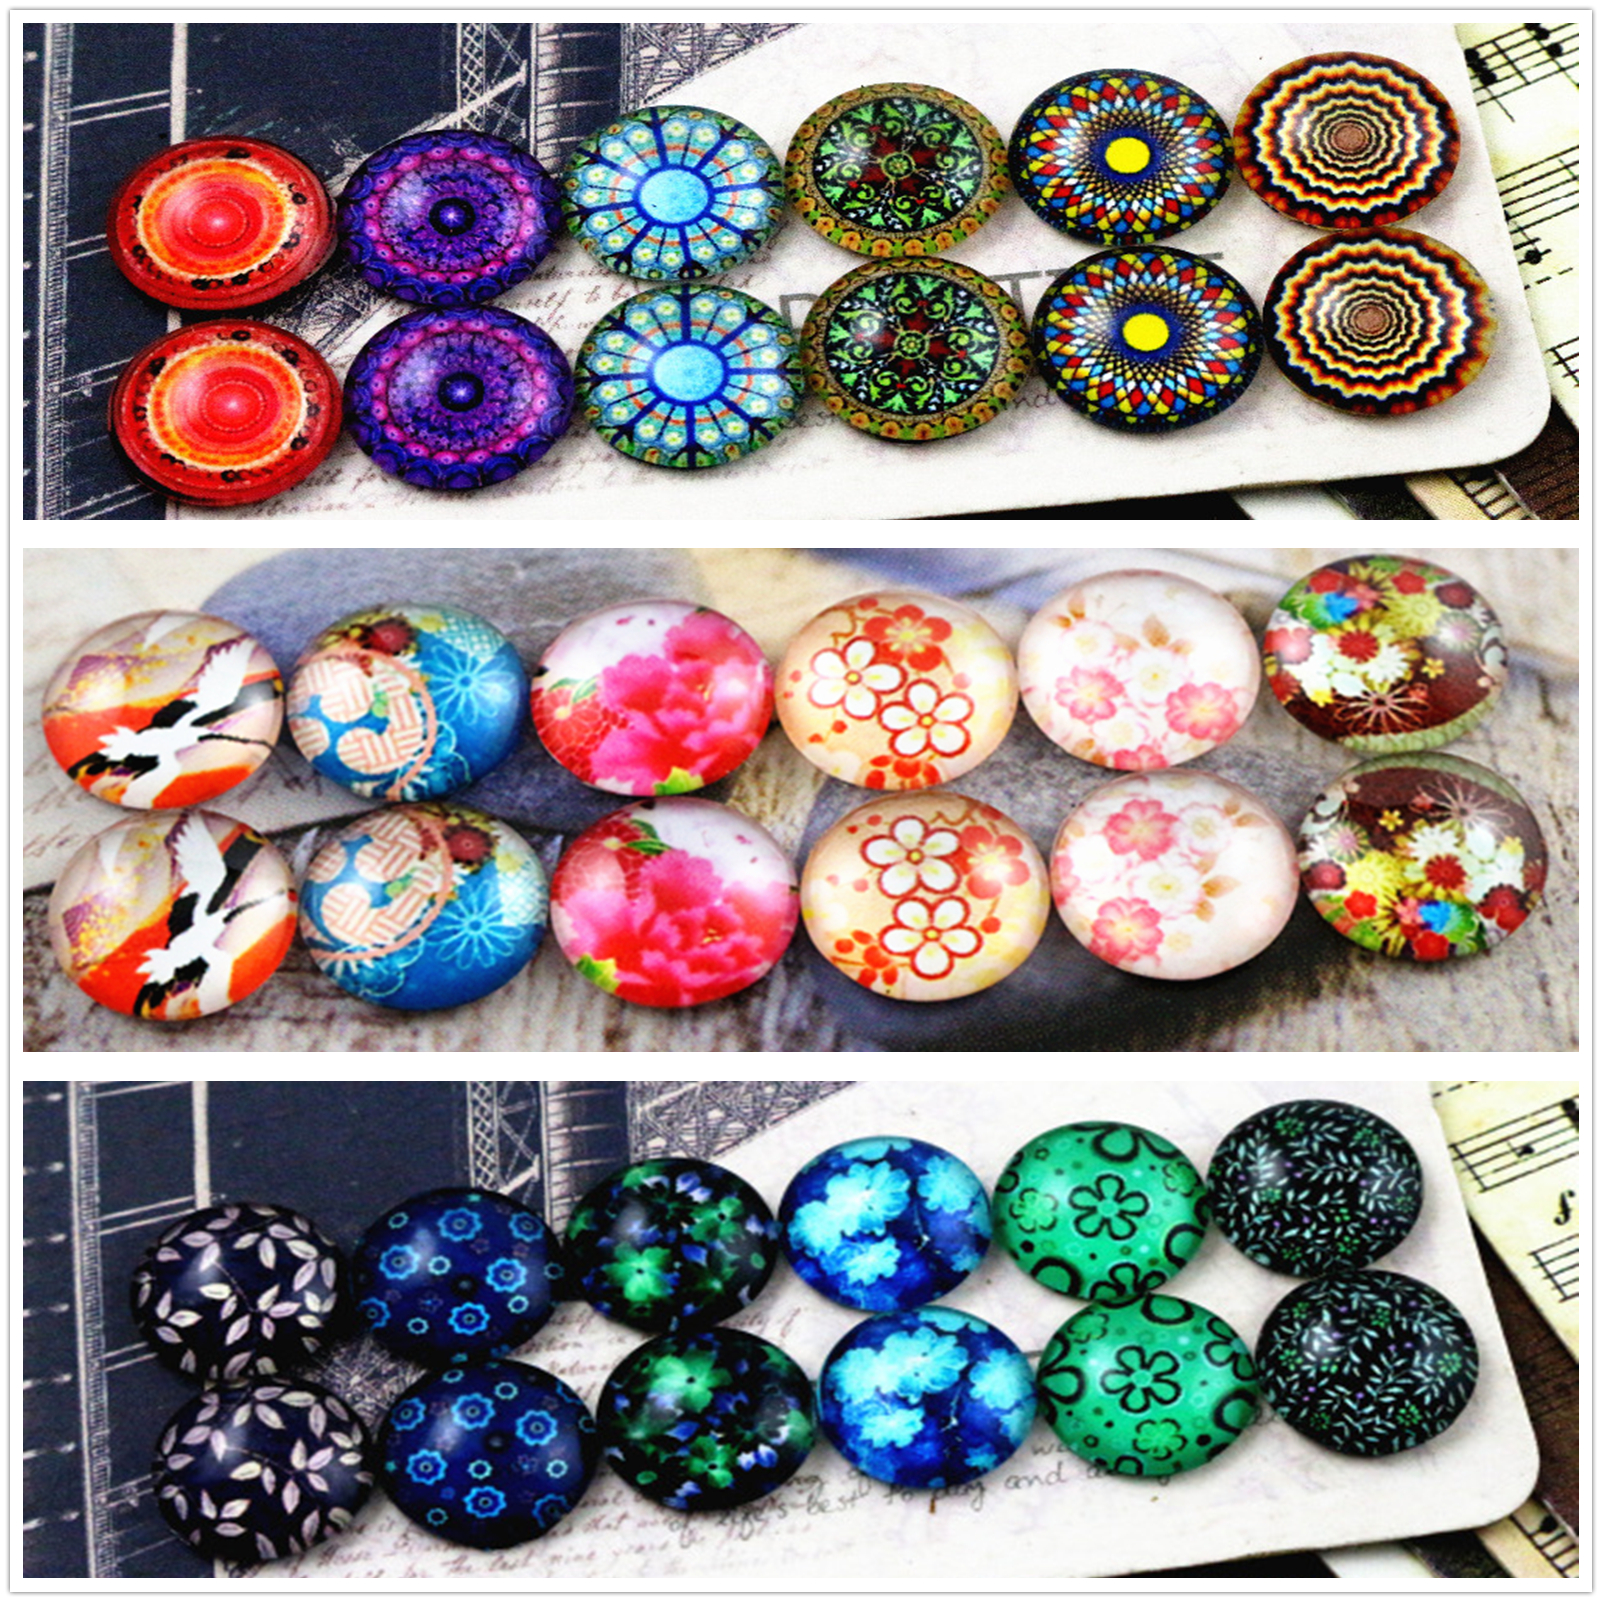 12pcs/lot (One Set) Three Style 12mm Retro Flowers Handmade Glass Cabochons Pattern Domed Jewelry Accessories Supplies